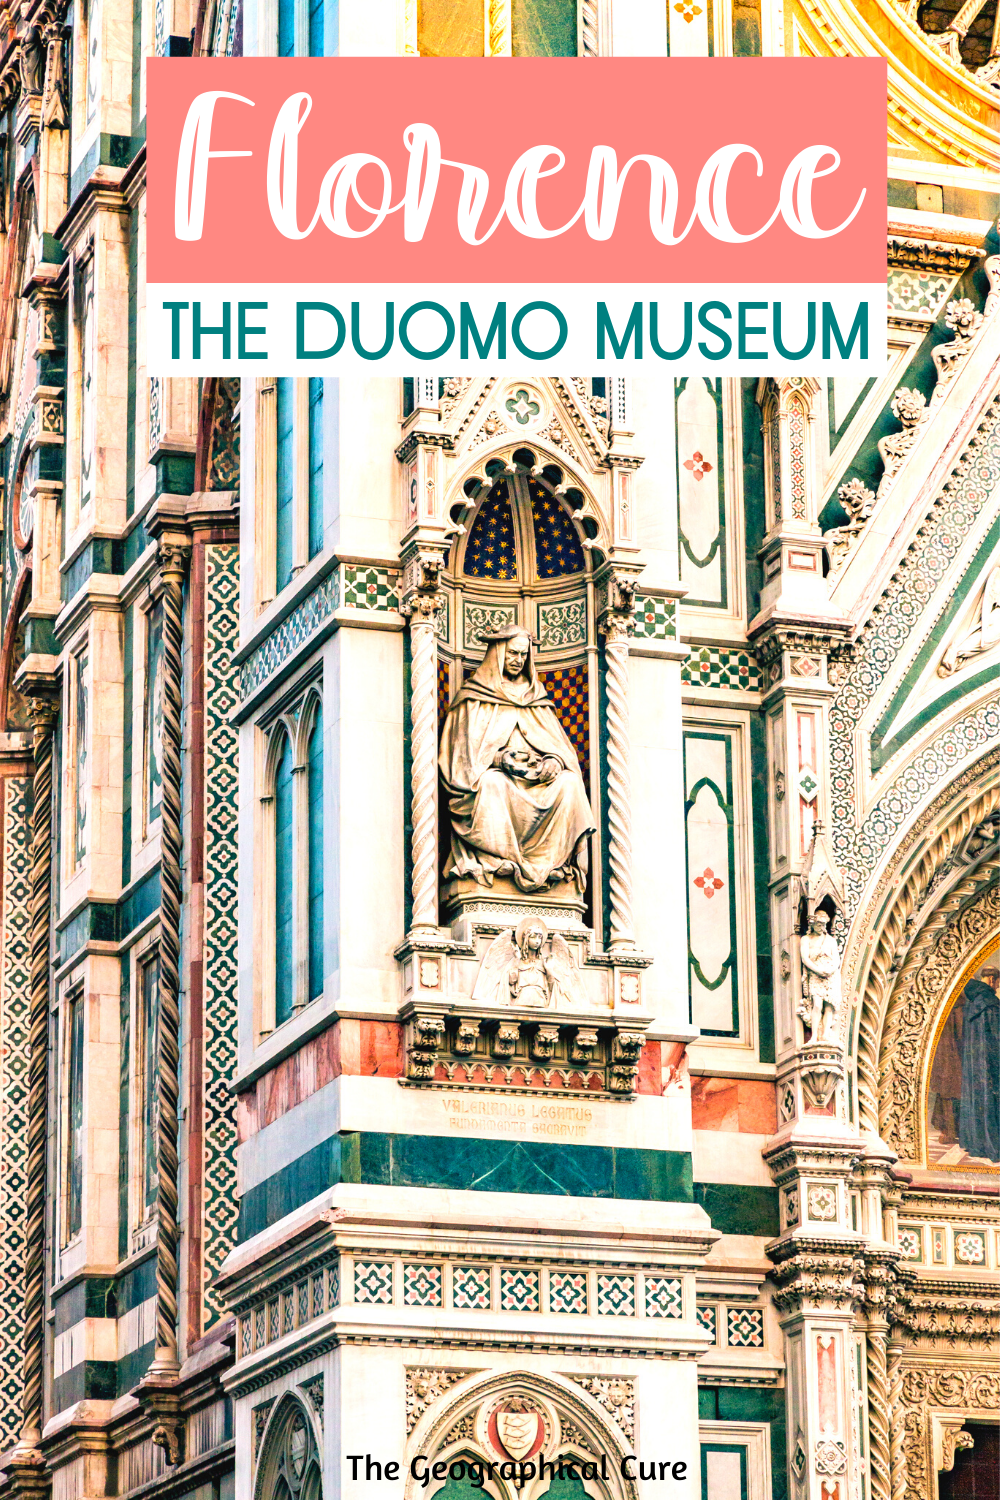 Guide to the Duomo Museum in Florence Italy